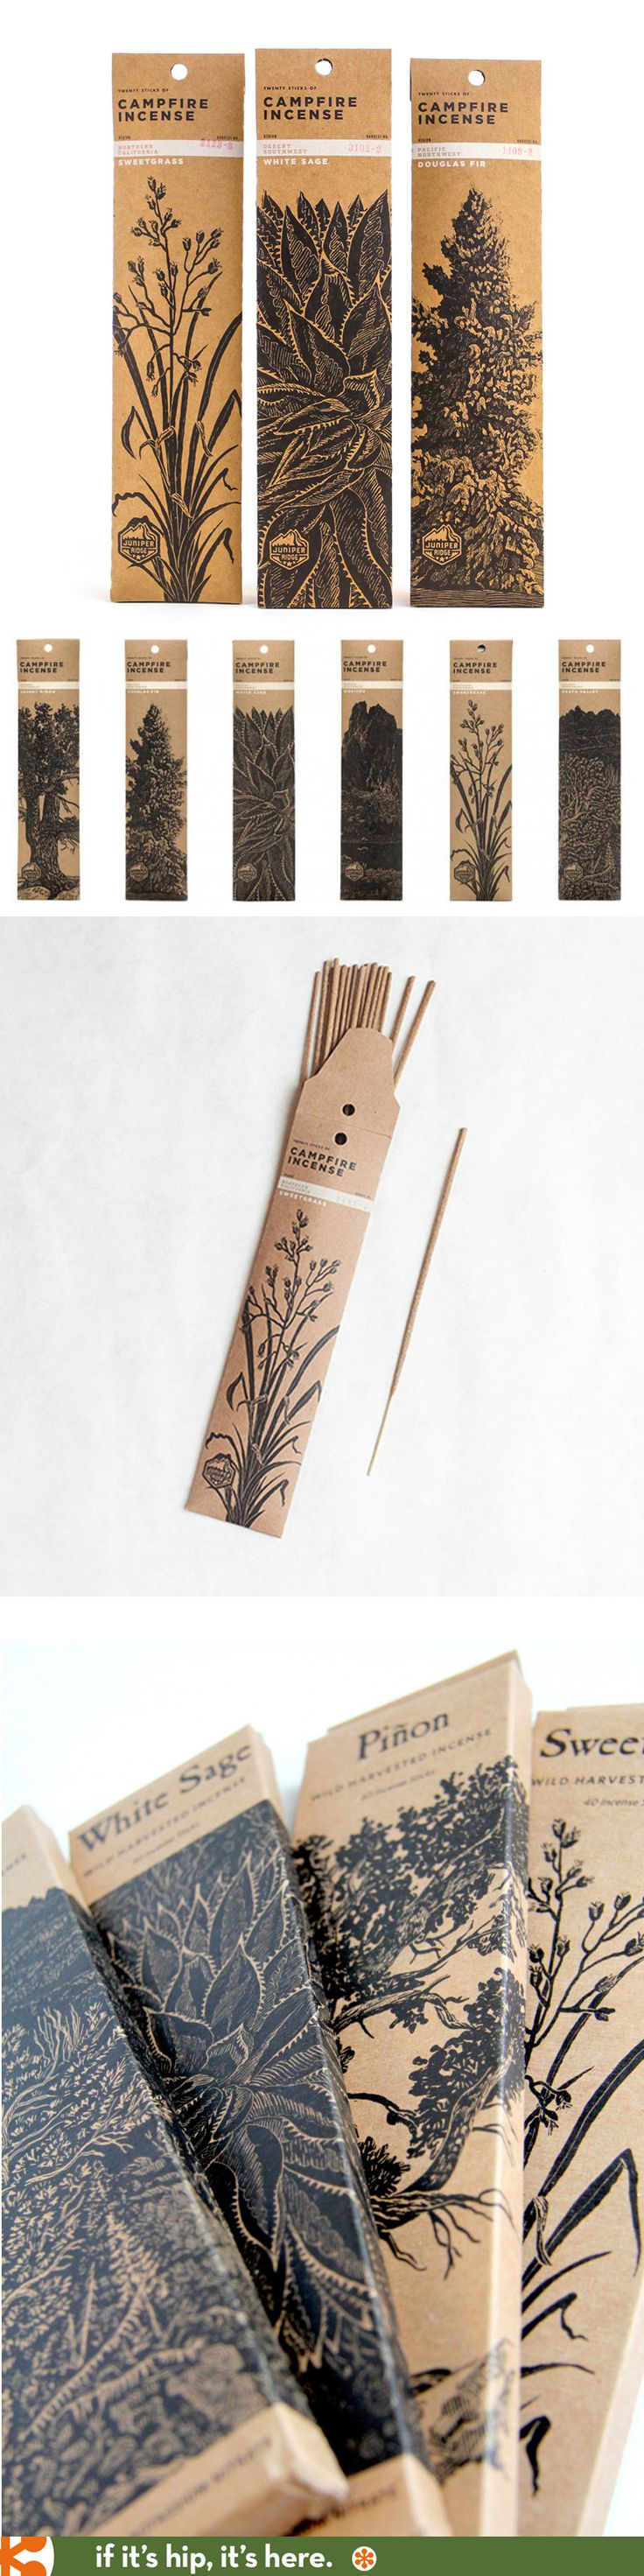 Love the packaging for Juniper Ridge brand's Campfire Incenses.